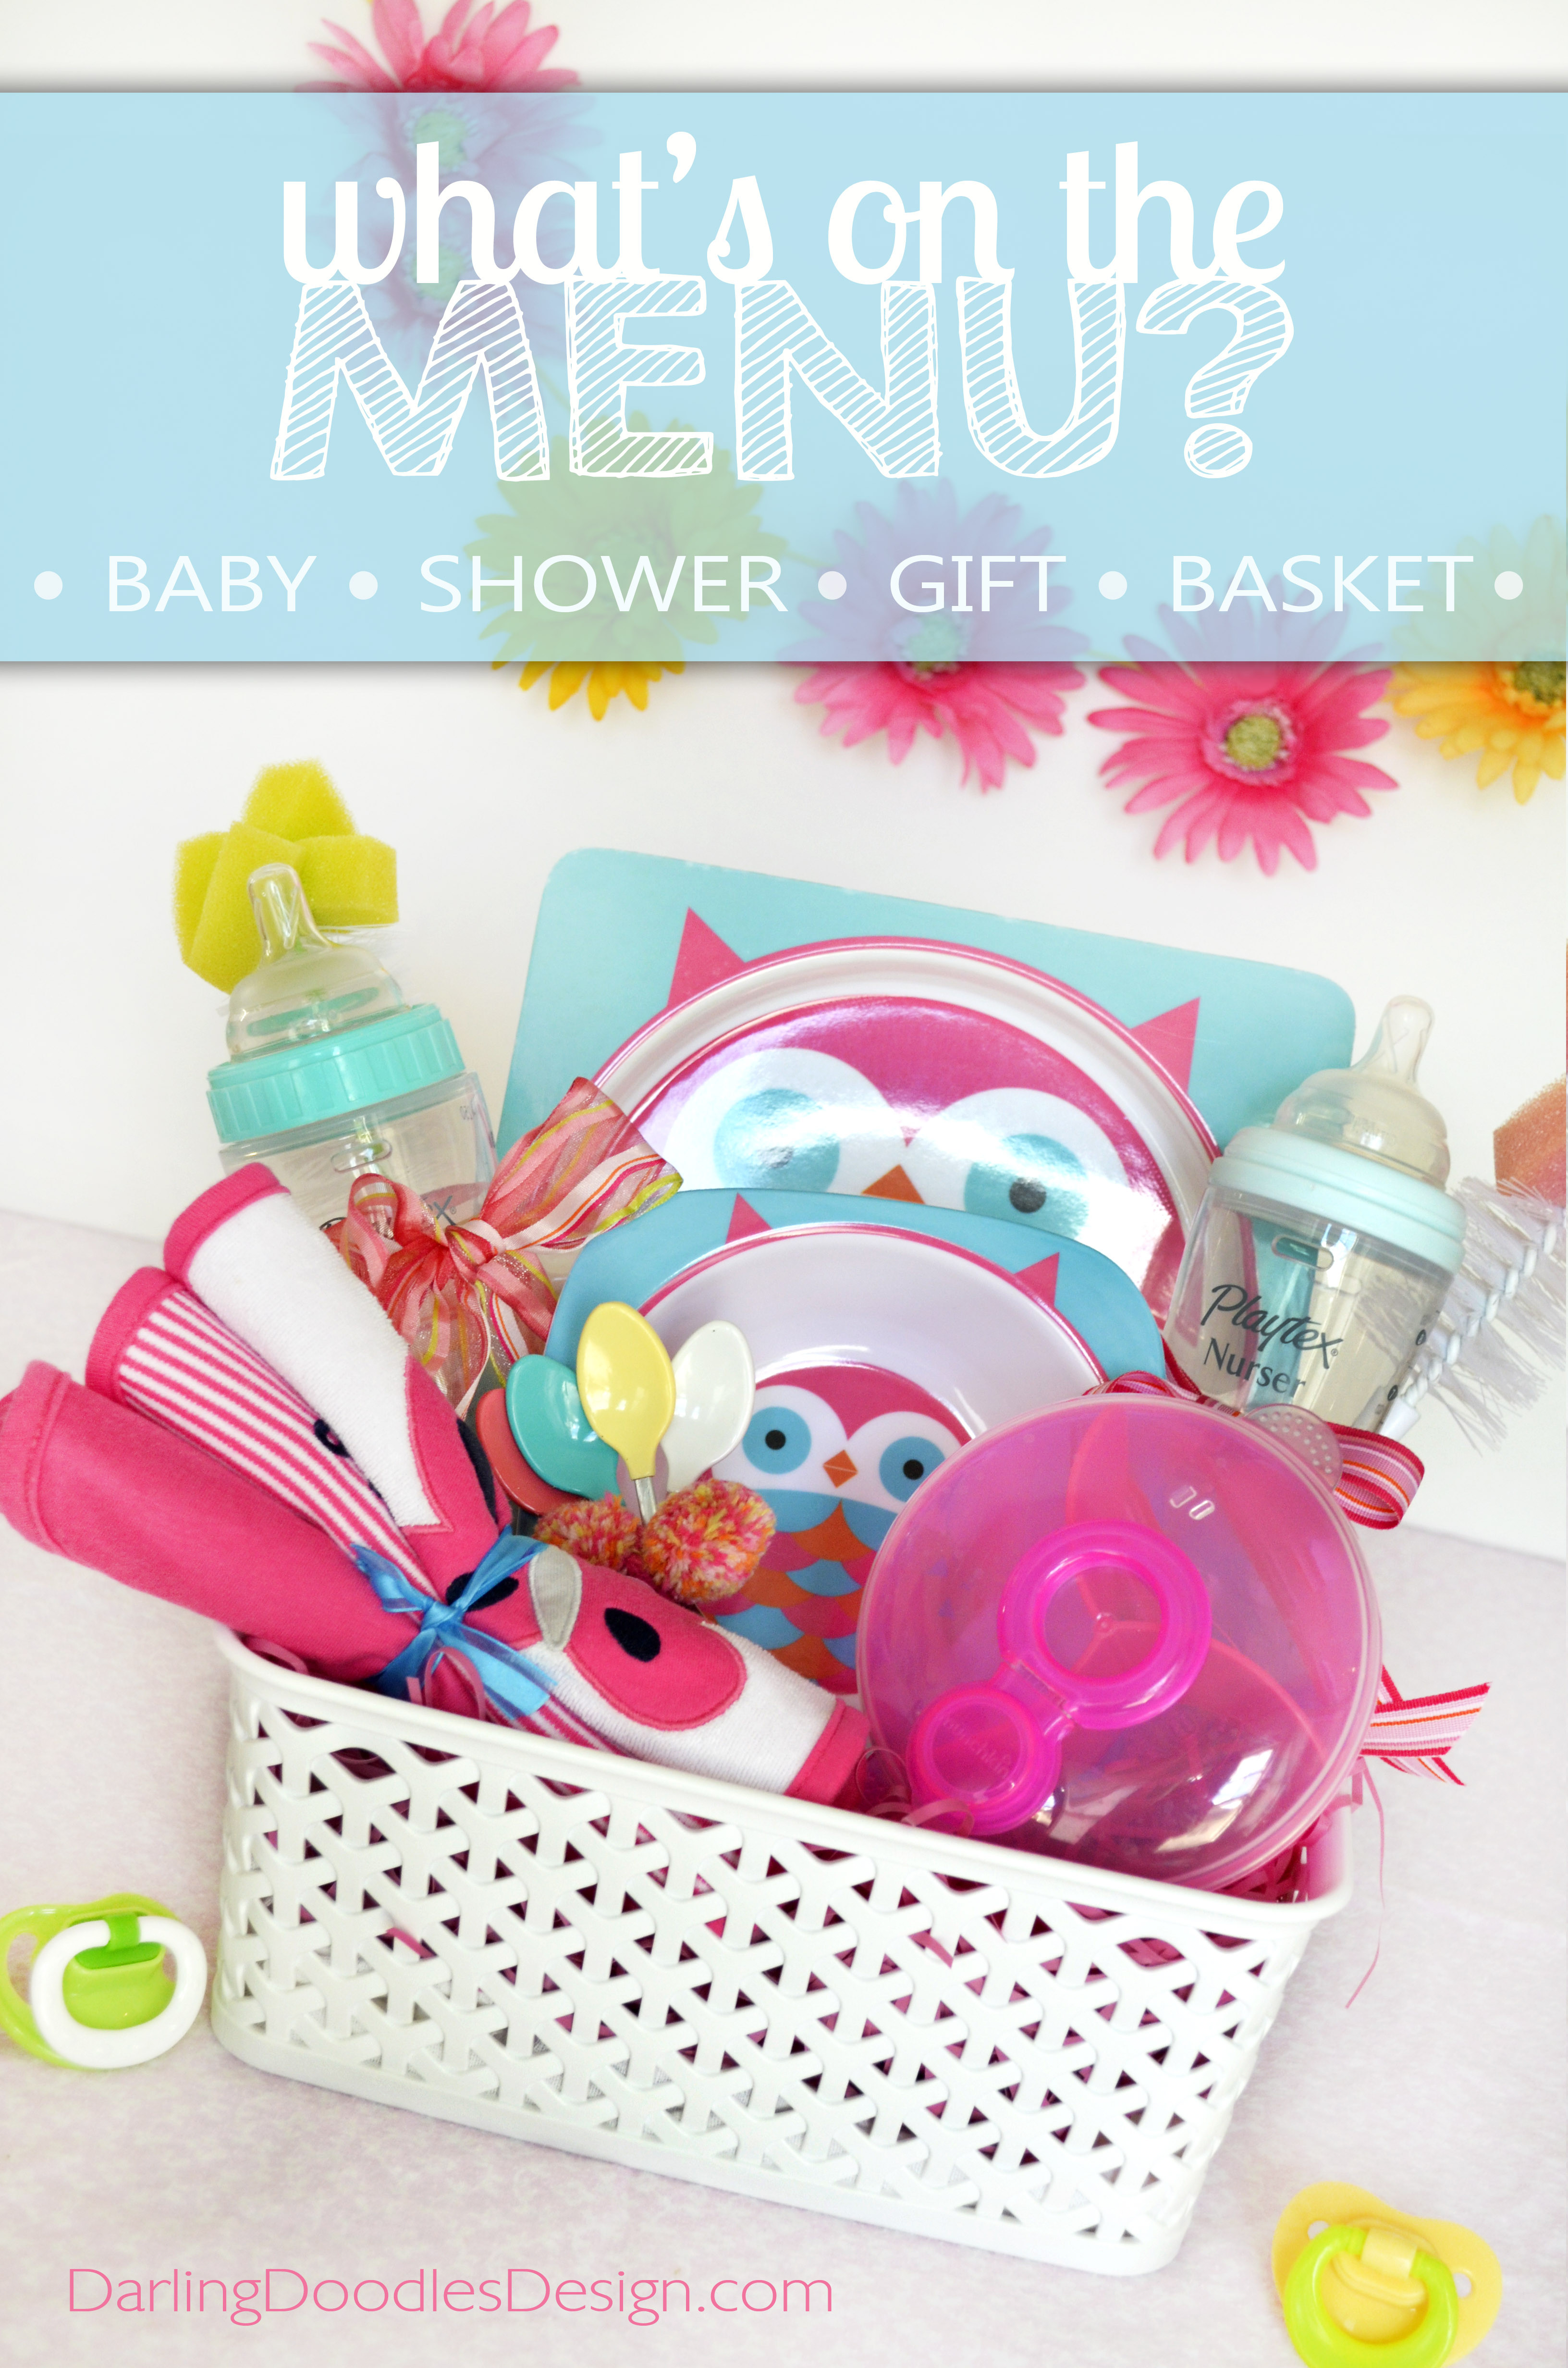 Best ideas about DIY Baby Gift Baskets . Save or Pin Baby Shower Now.